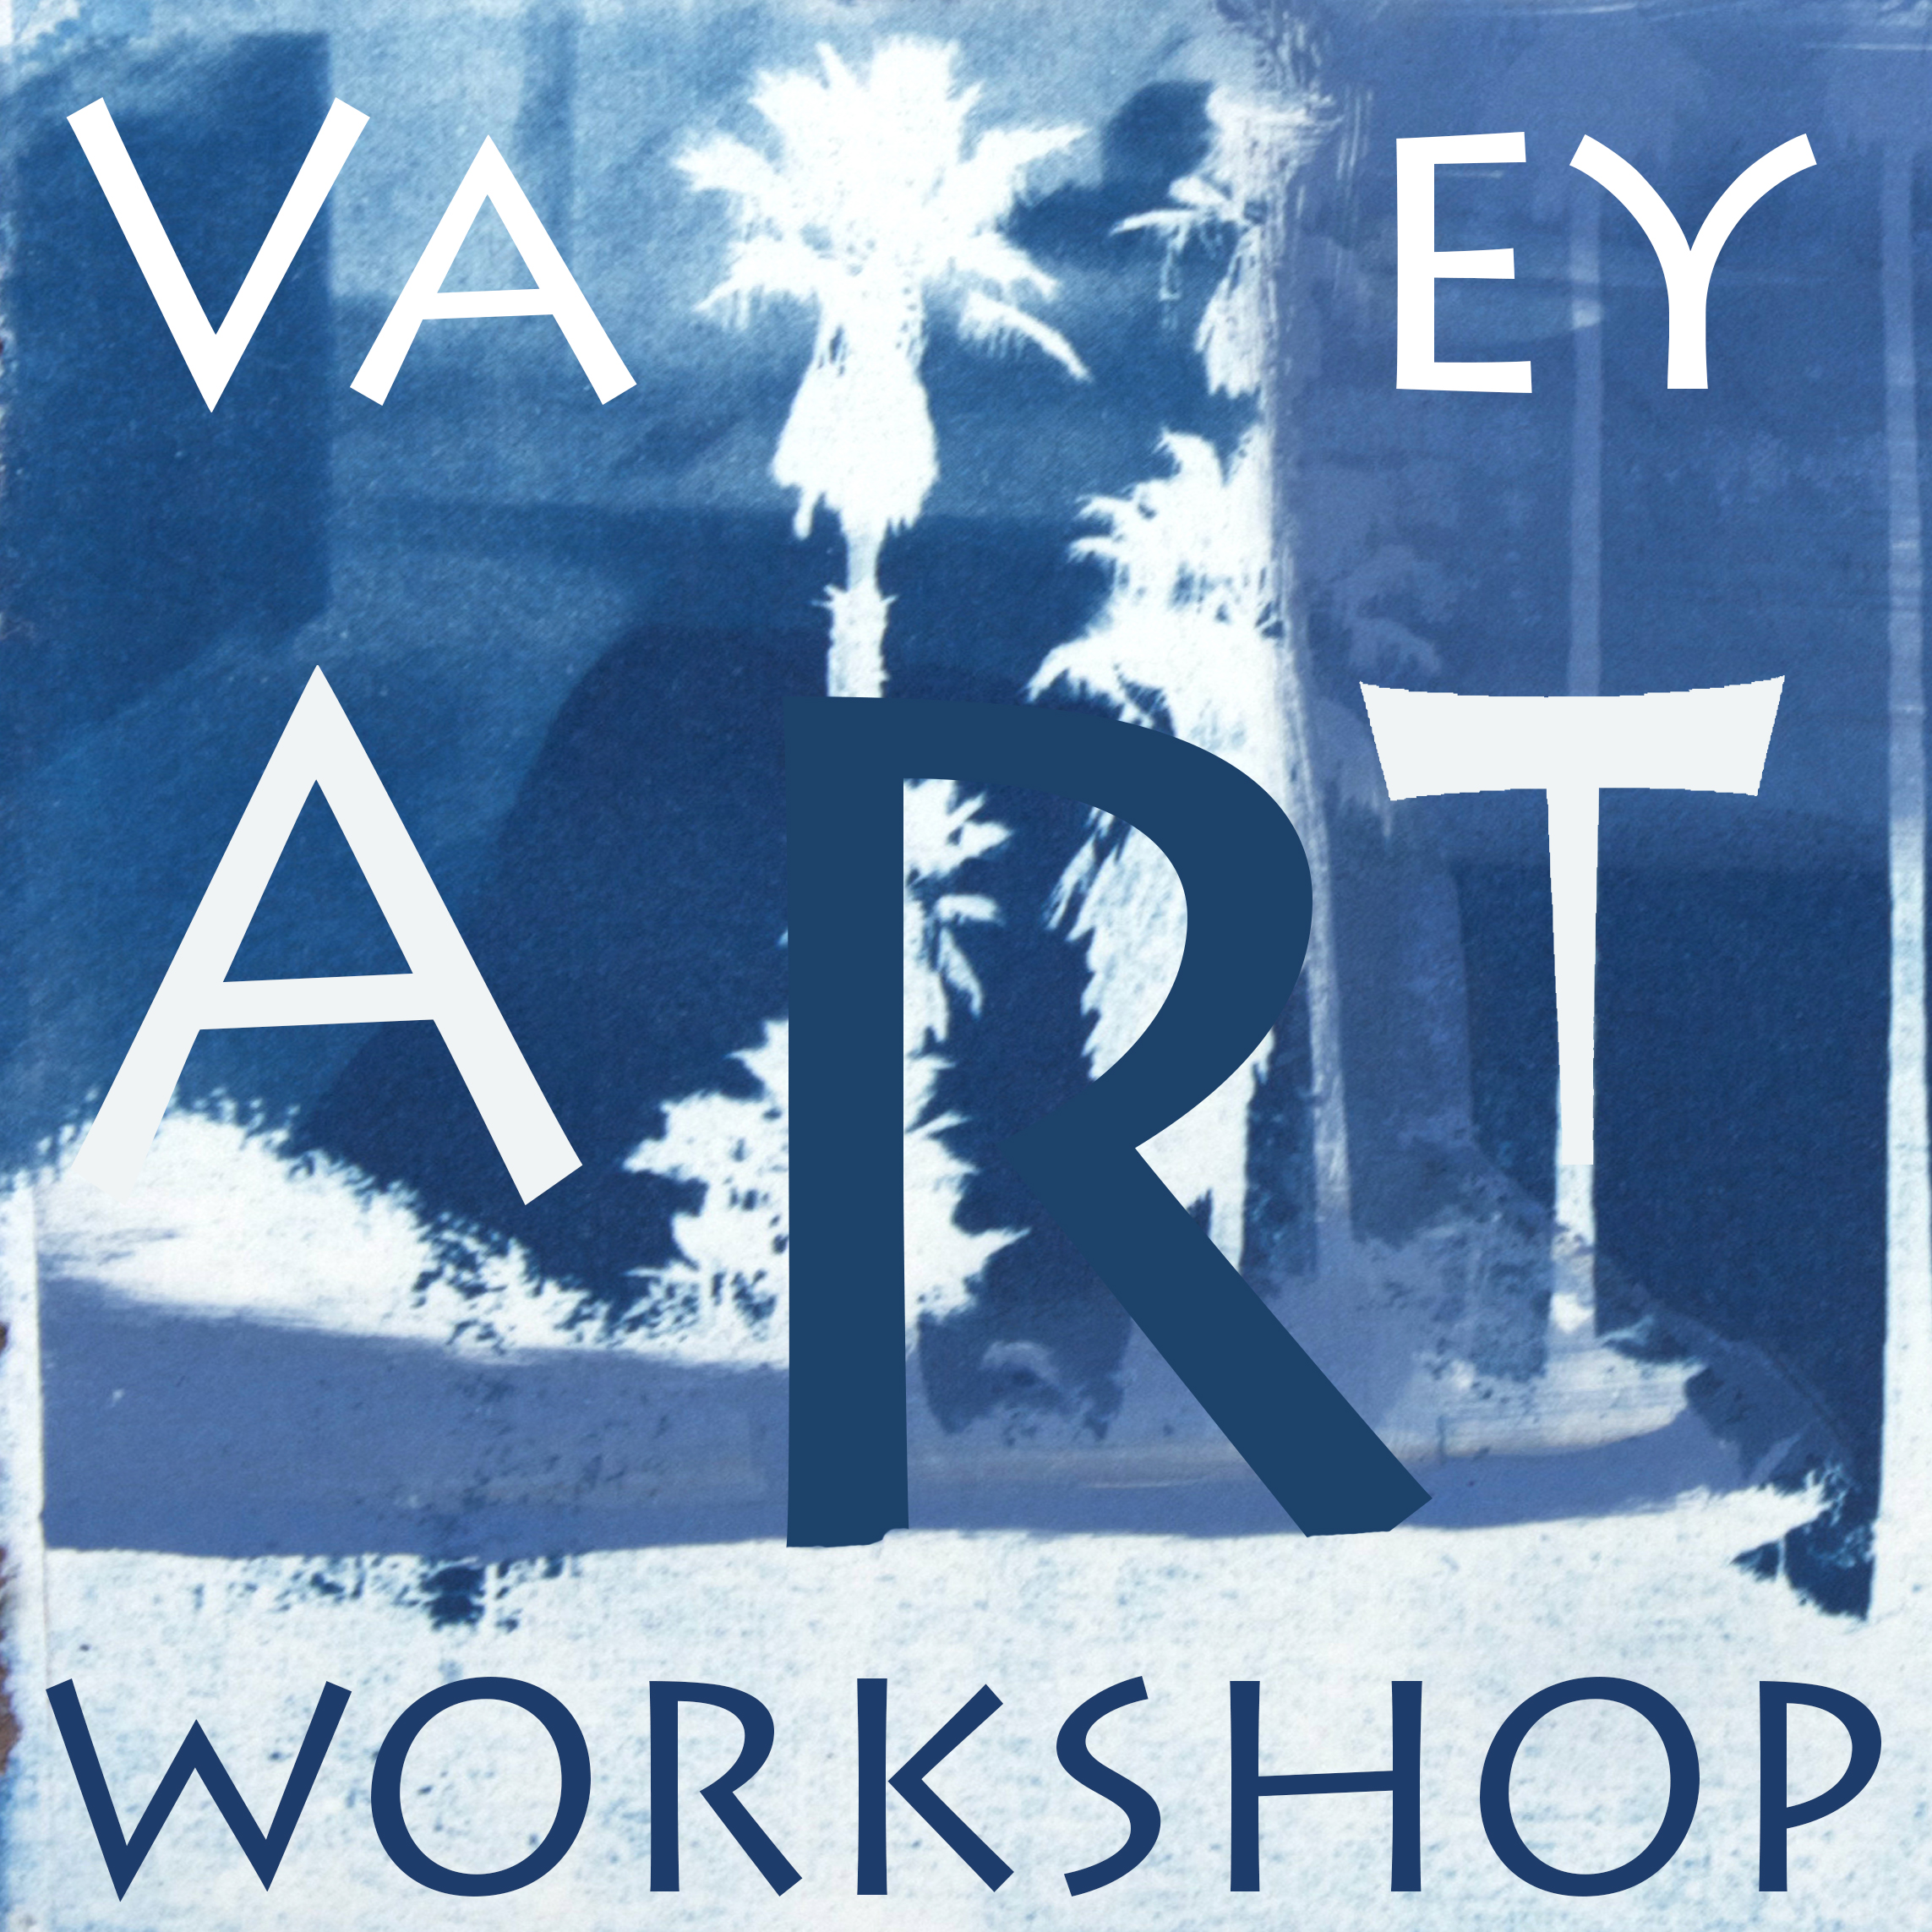 Valley Art Workshop - A community-focused educational art and music venue. The Workshop serves as the headquarters of Paper Earth.